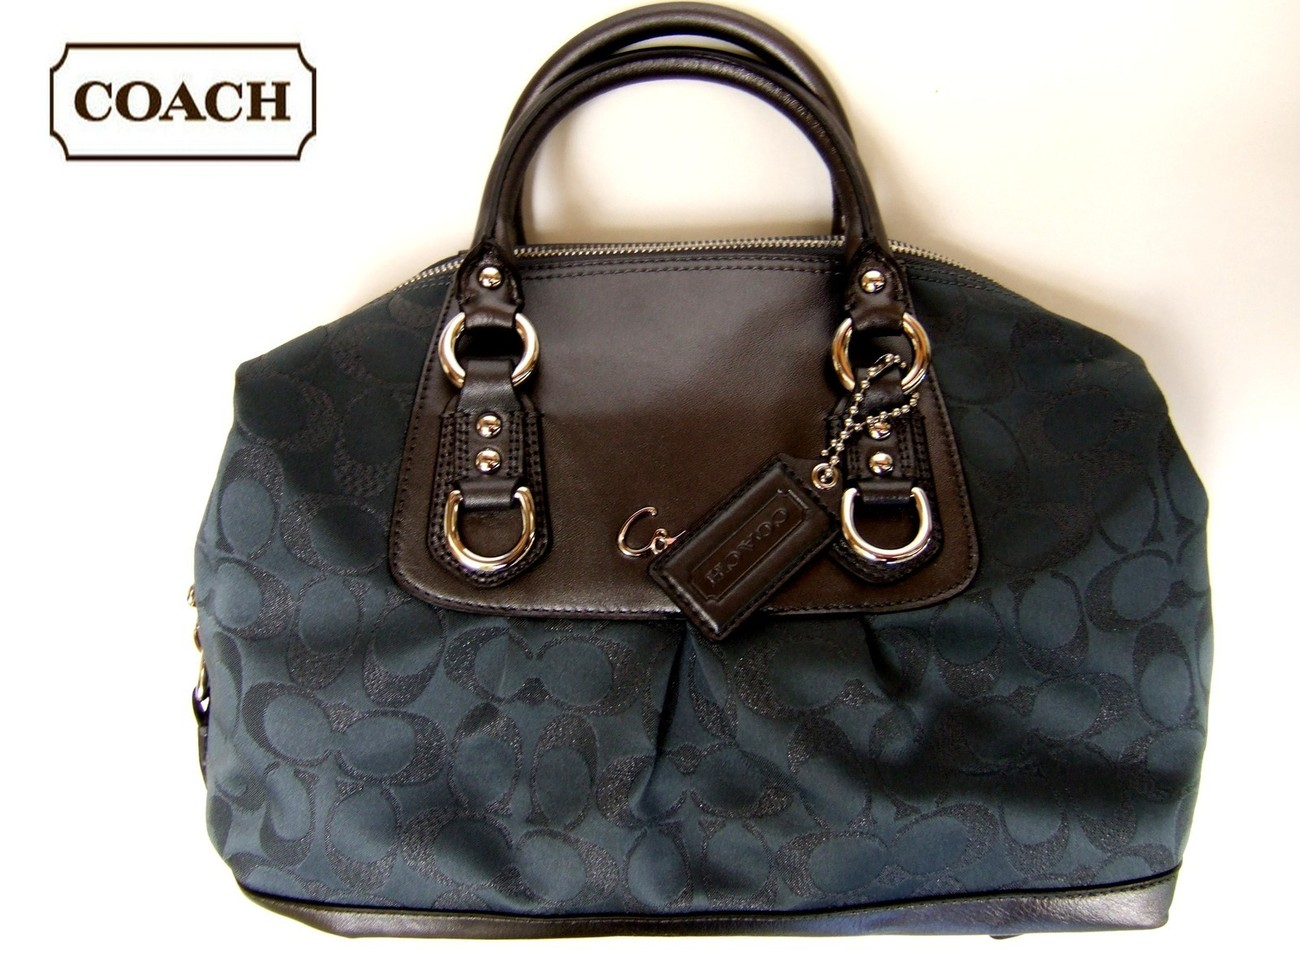 $298NWT Coach Ashley Metallic Signature Satchel F18777 Handbag Authentic